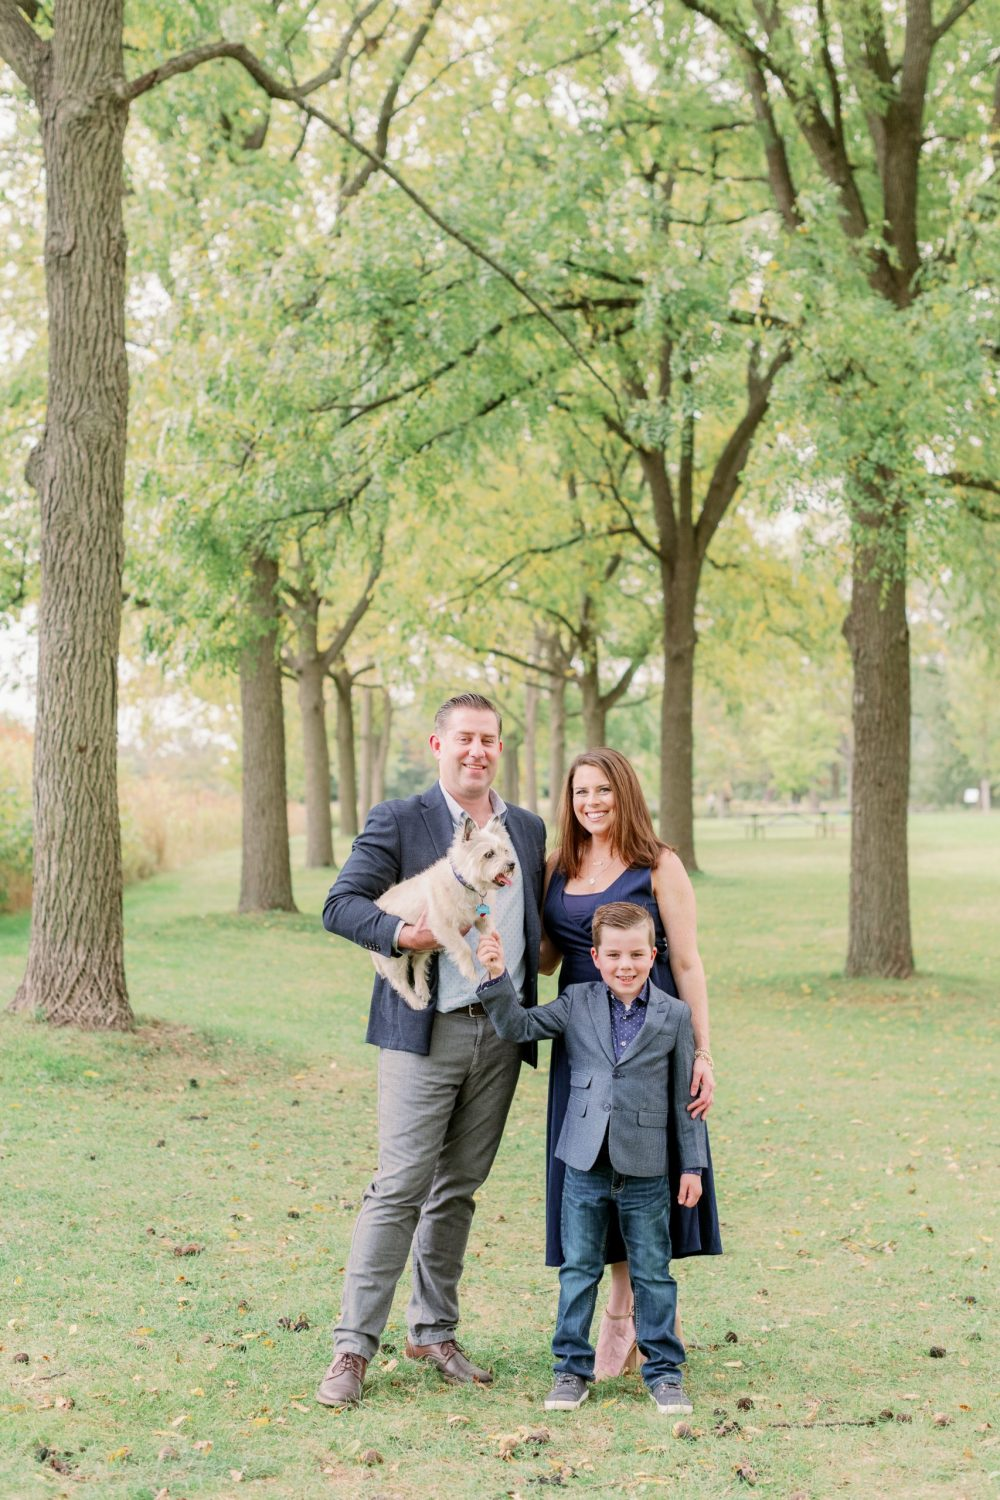 Dog Friendly Photo Locations in Chicago Suburbs